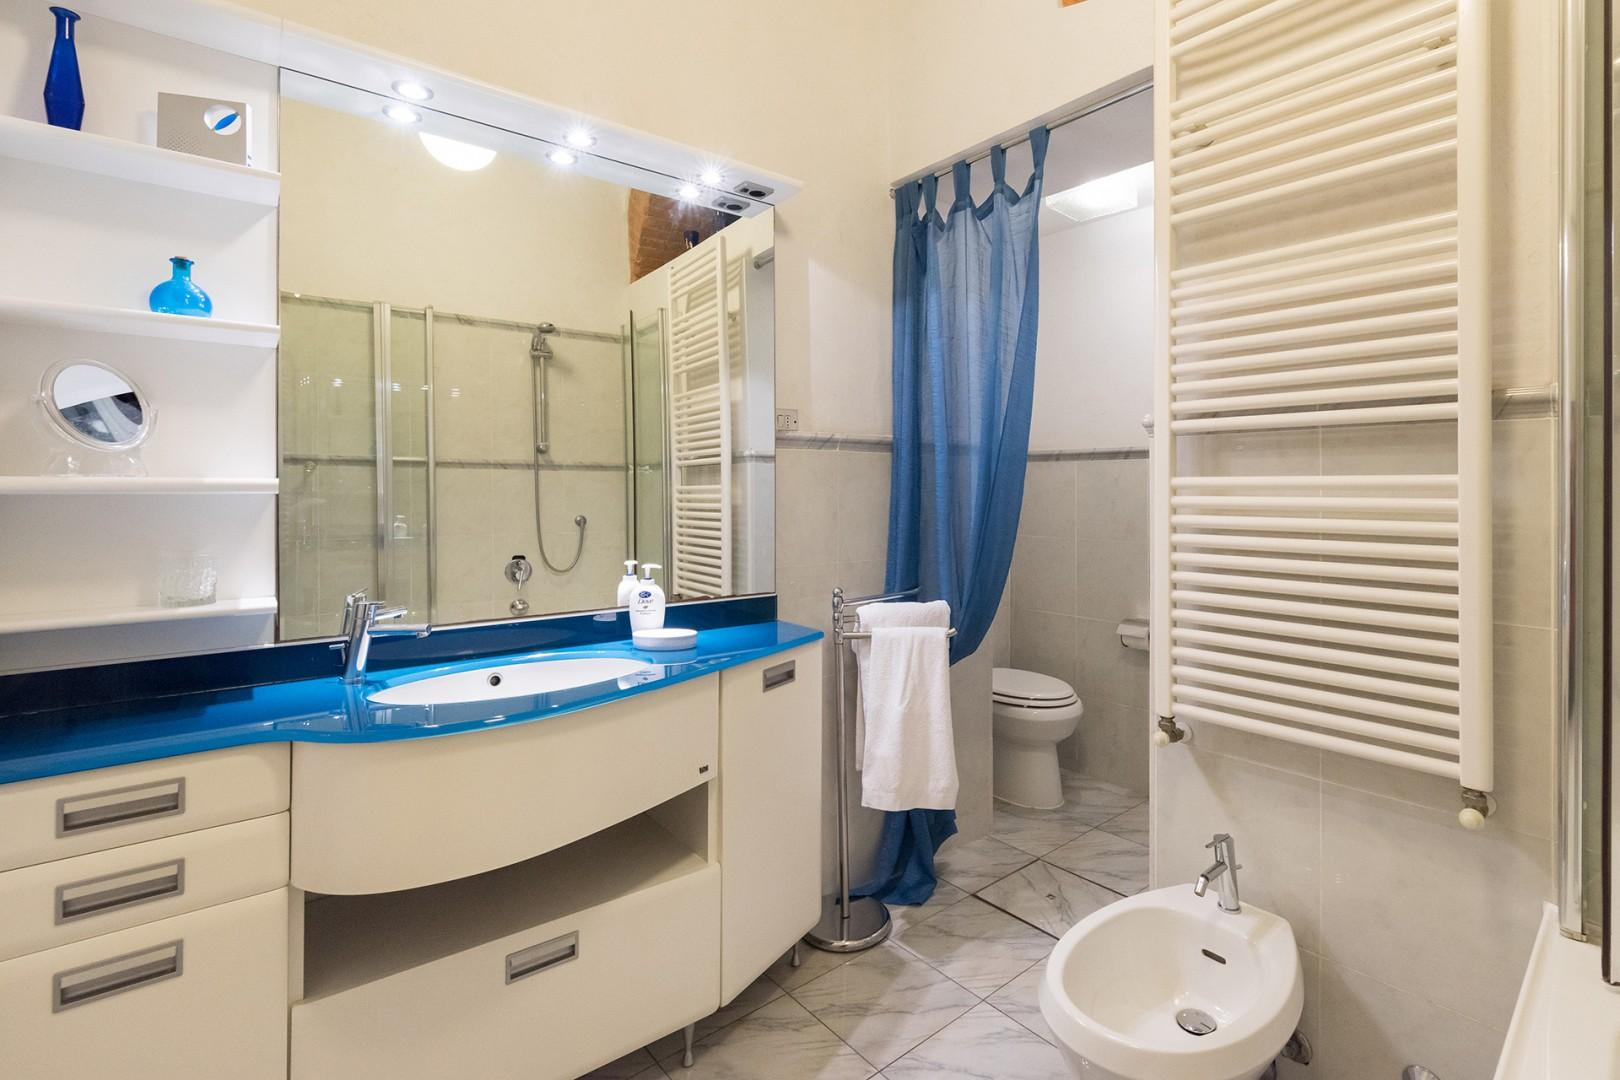 Light and airy bathroom with toilet, bidet and full size bathtub with glass shower enclosure.